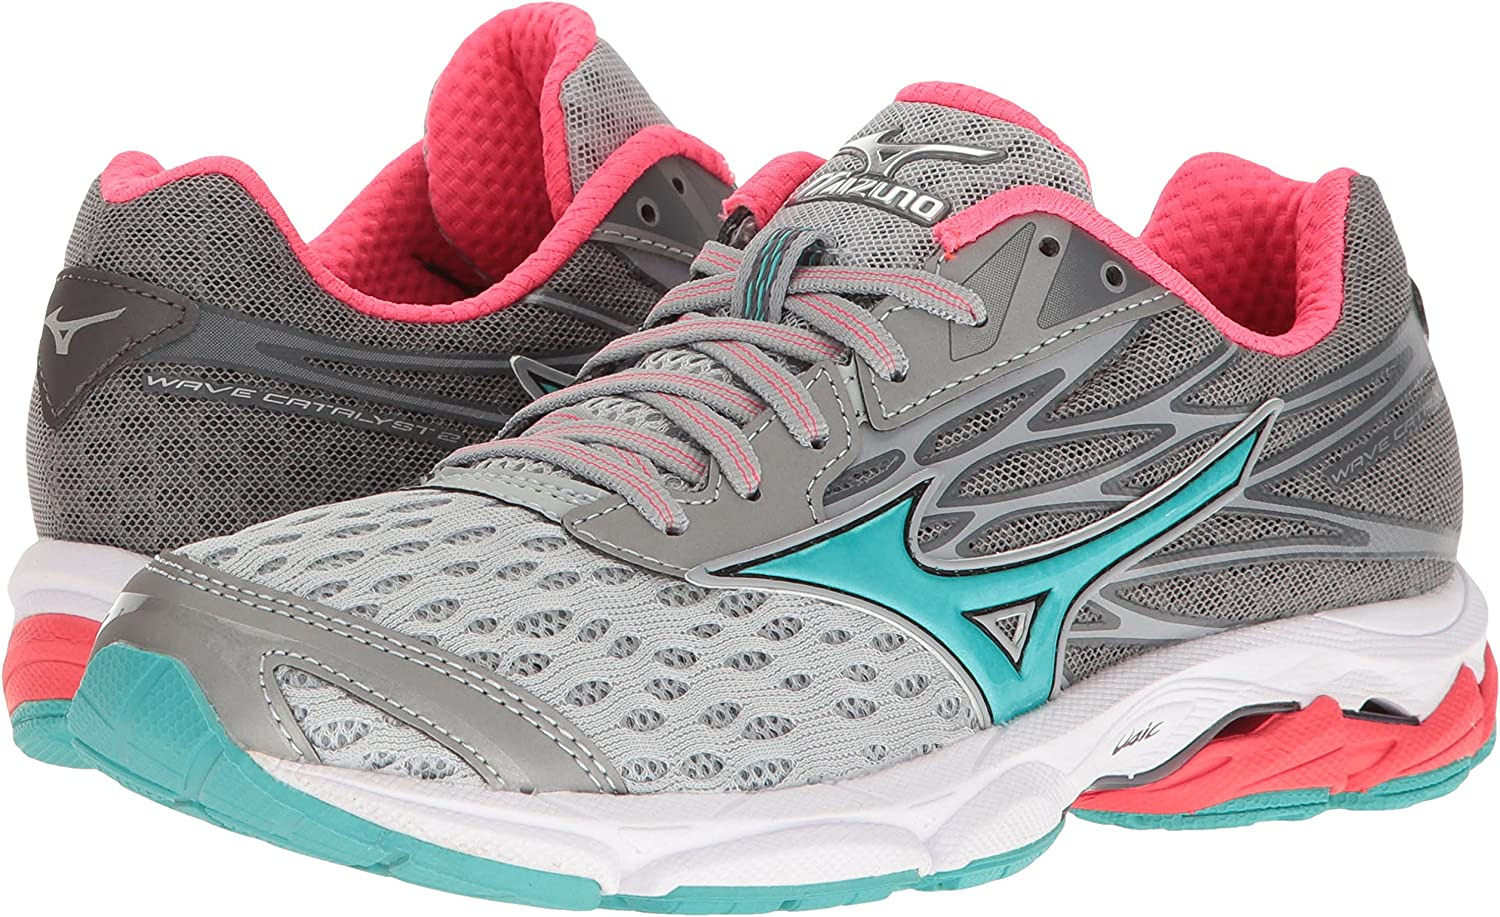 Wave Catalyst 2 Running Shoes